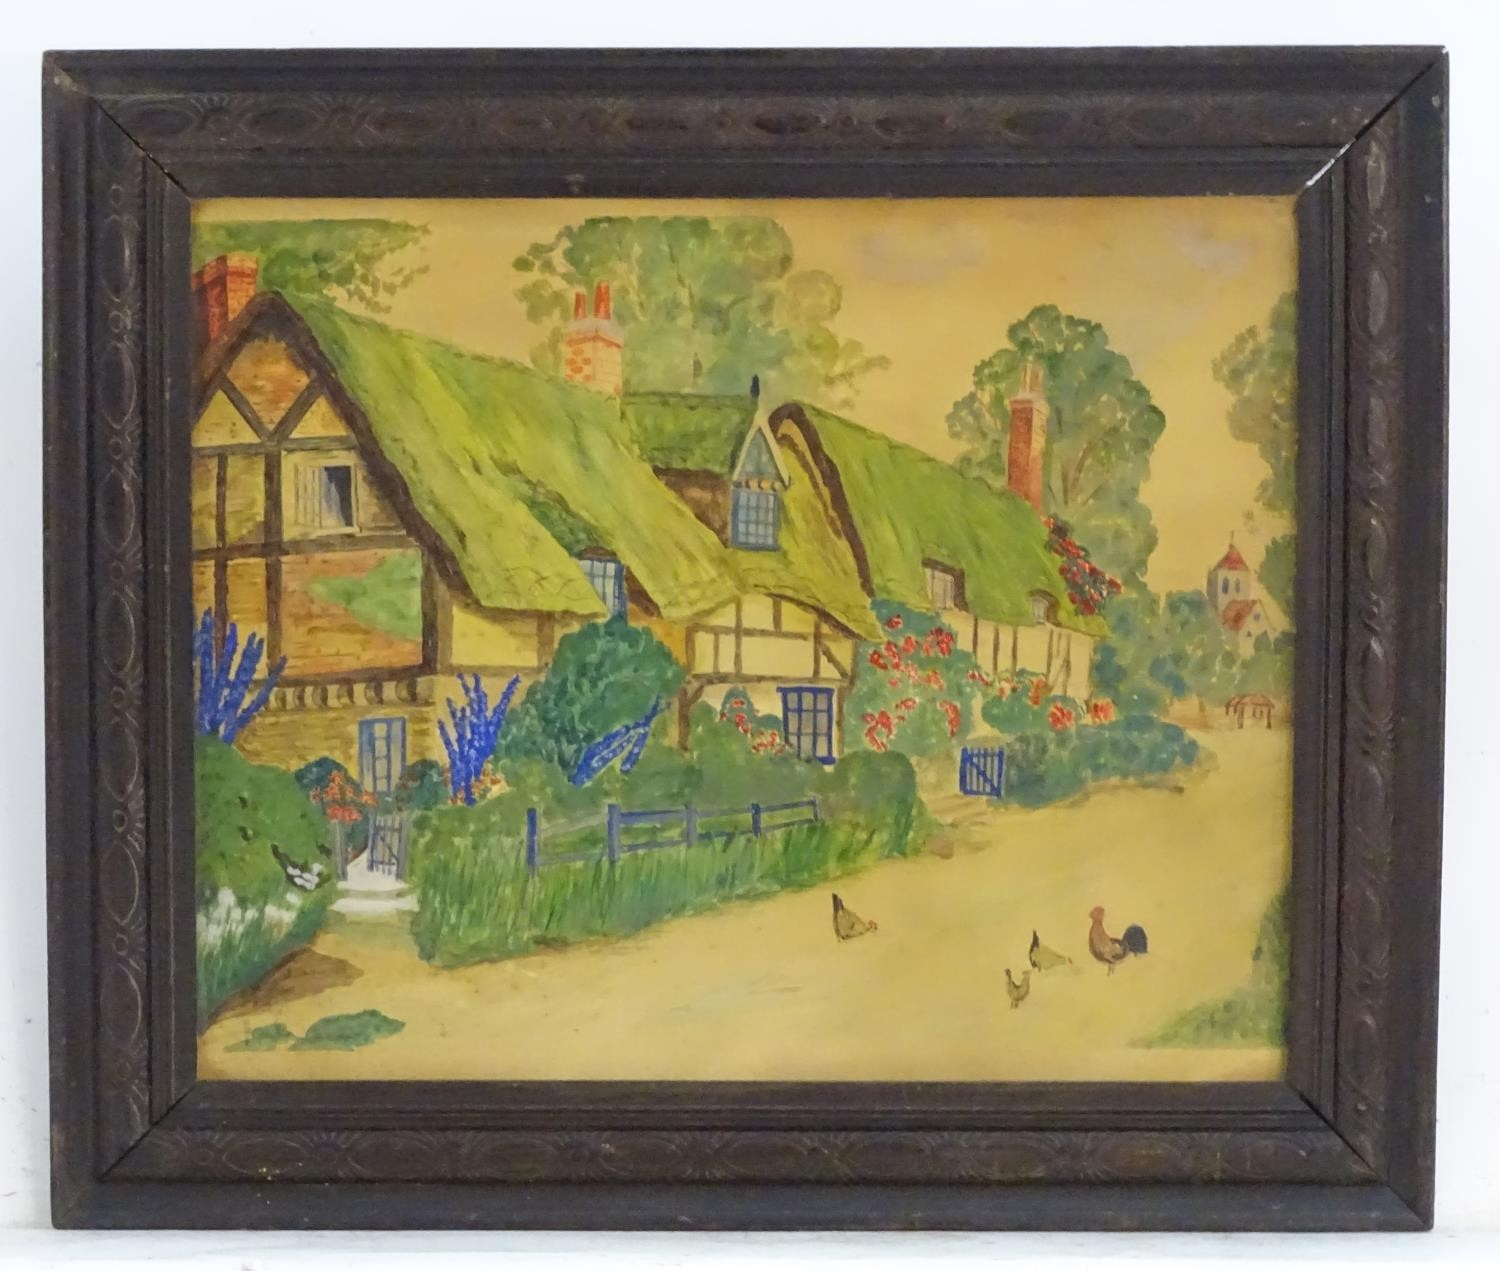 20thC, English School, Watercolour, A naive / folk art scene depicting a village with thatched